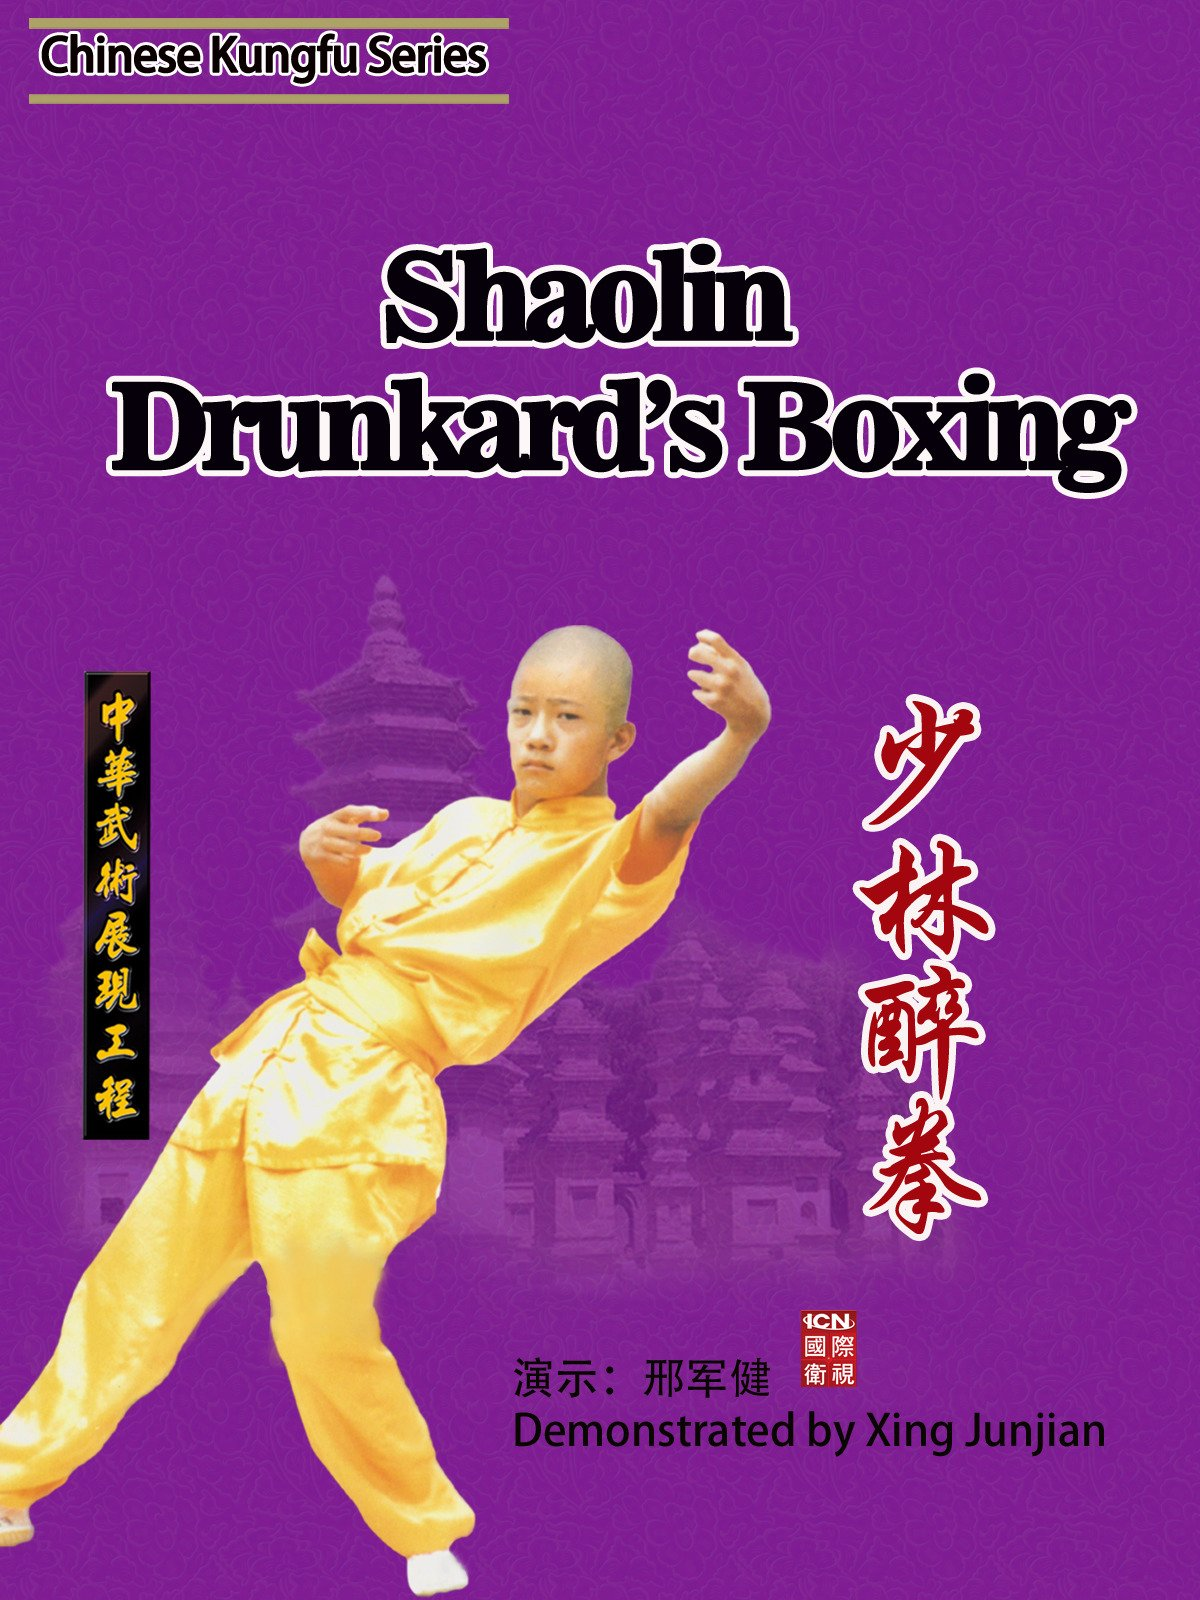 Chinese Kungfu Series-Shaolin Drunkard's Boxing(Demonstrated by Xing Junjian)